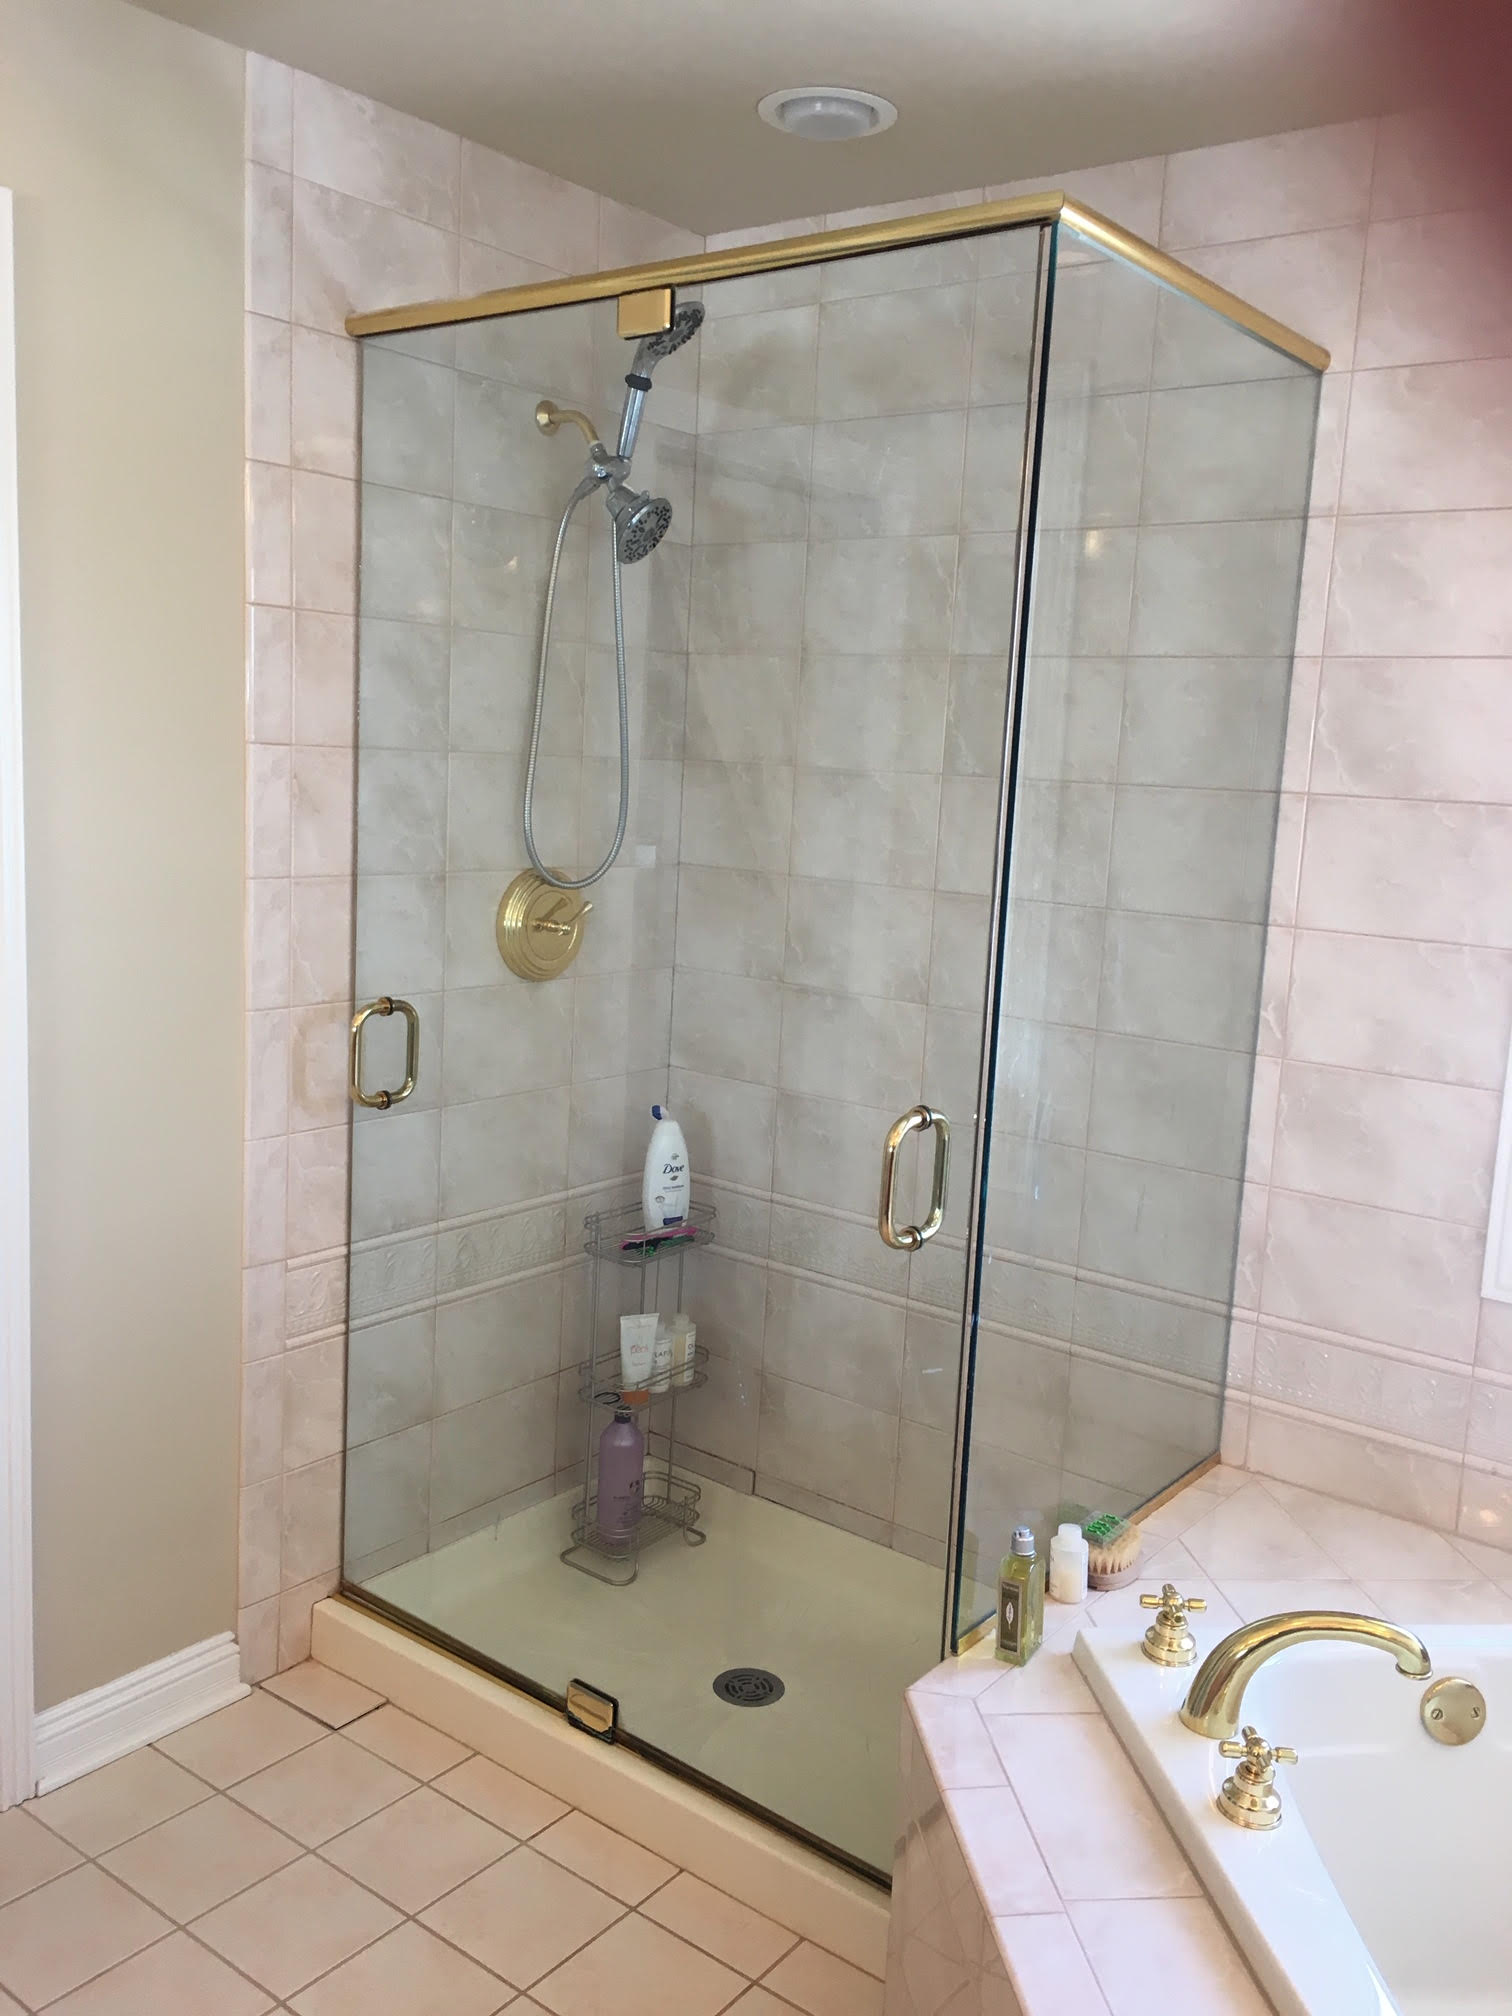 Before Photo of Outdated Shower & Brass Tub Plumbing Fixrtures Remodel with Grey Marble Shower & Freestanding Tub. Naperville IL Bathroom Remodeling & Updating. Located in Geneva IL